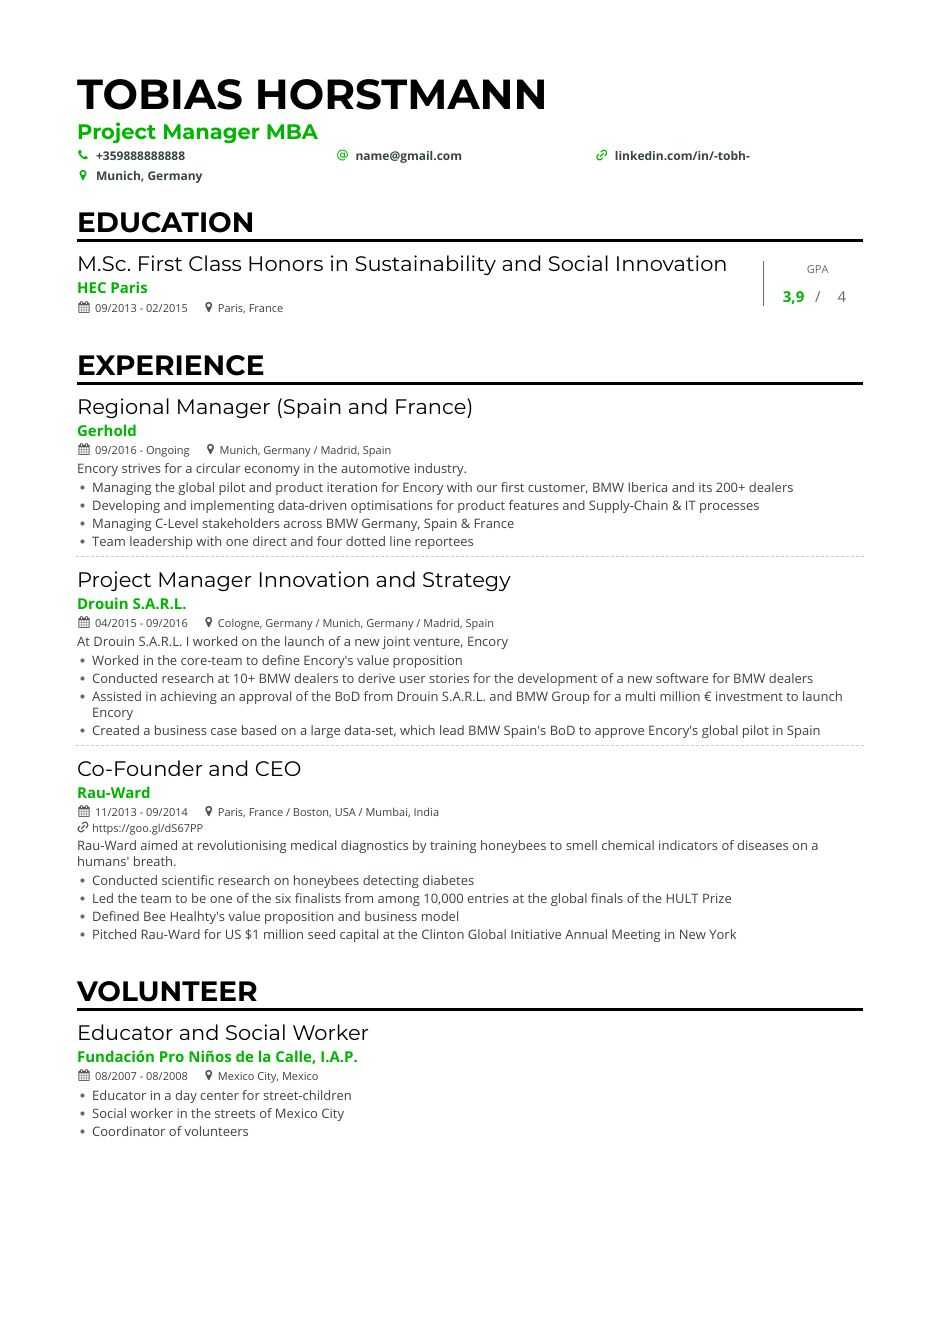 project manager resume examples guide expert tips for writing service generated resumes Resume Project Manager Resume Writing Service